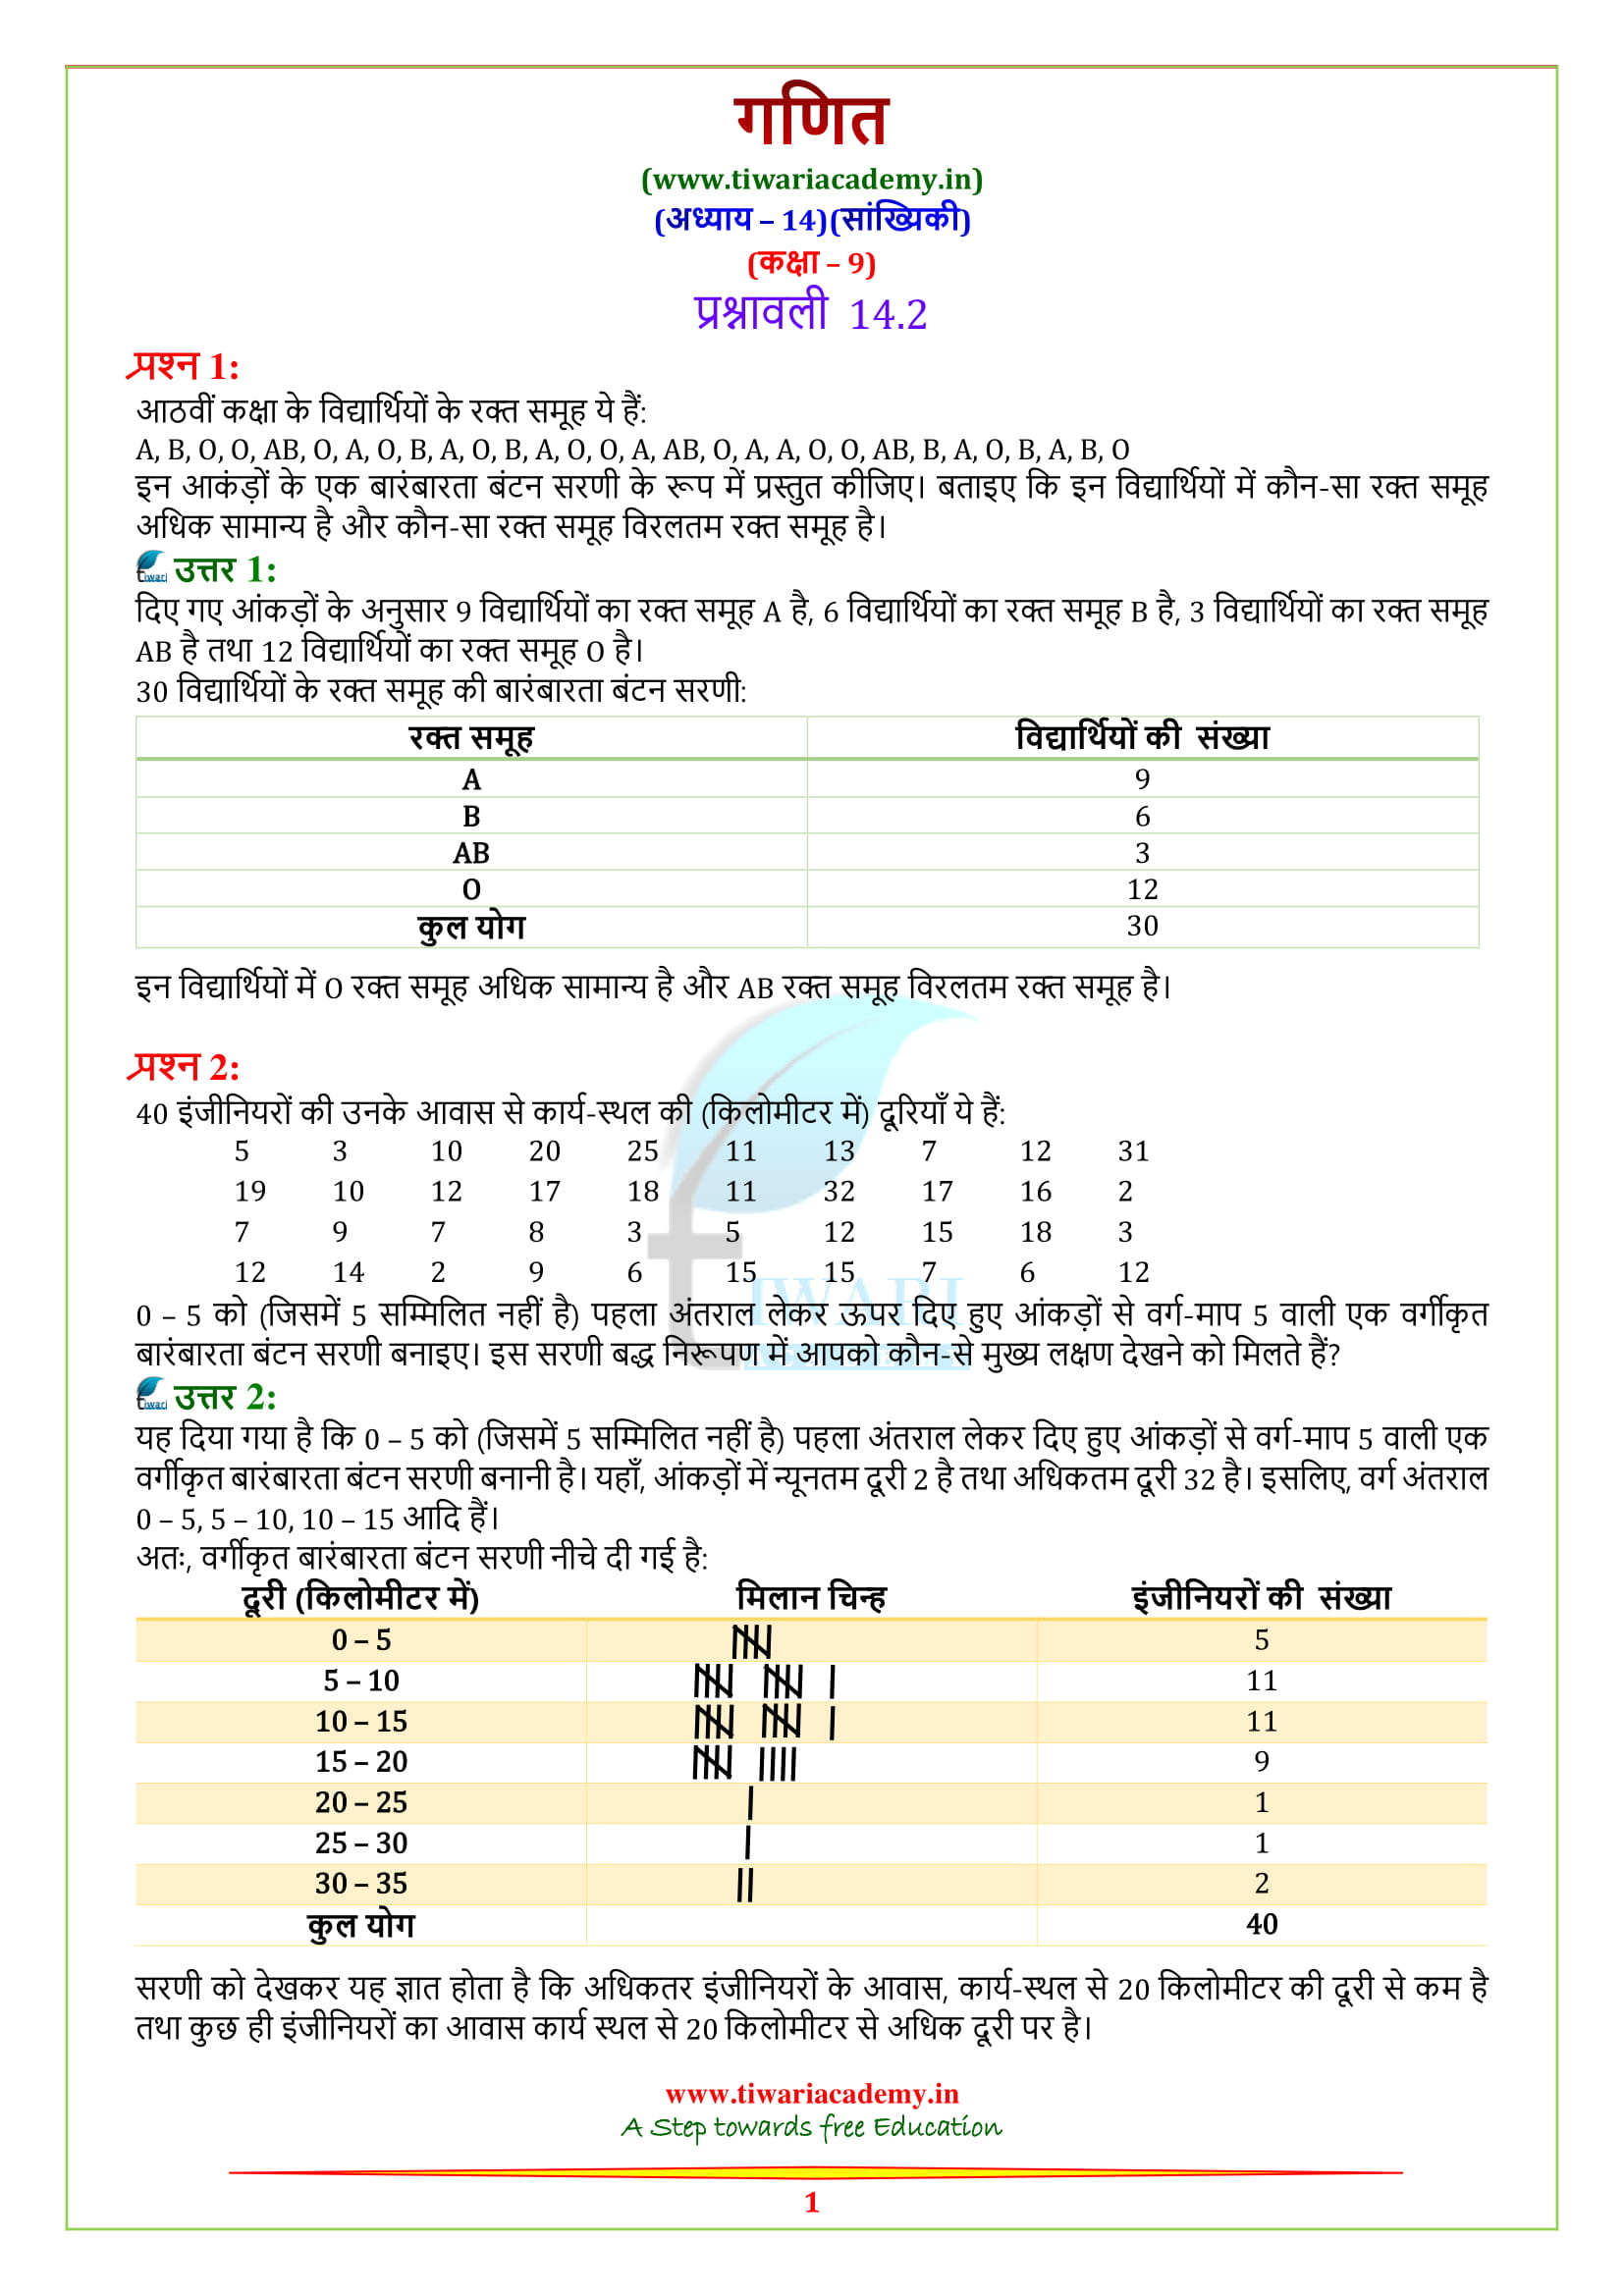 NCERT Solutions for Class 9 Maths Chapter 14 Exercise 14 1